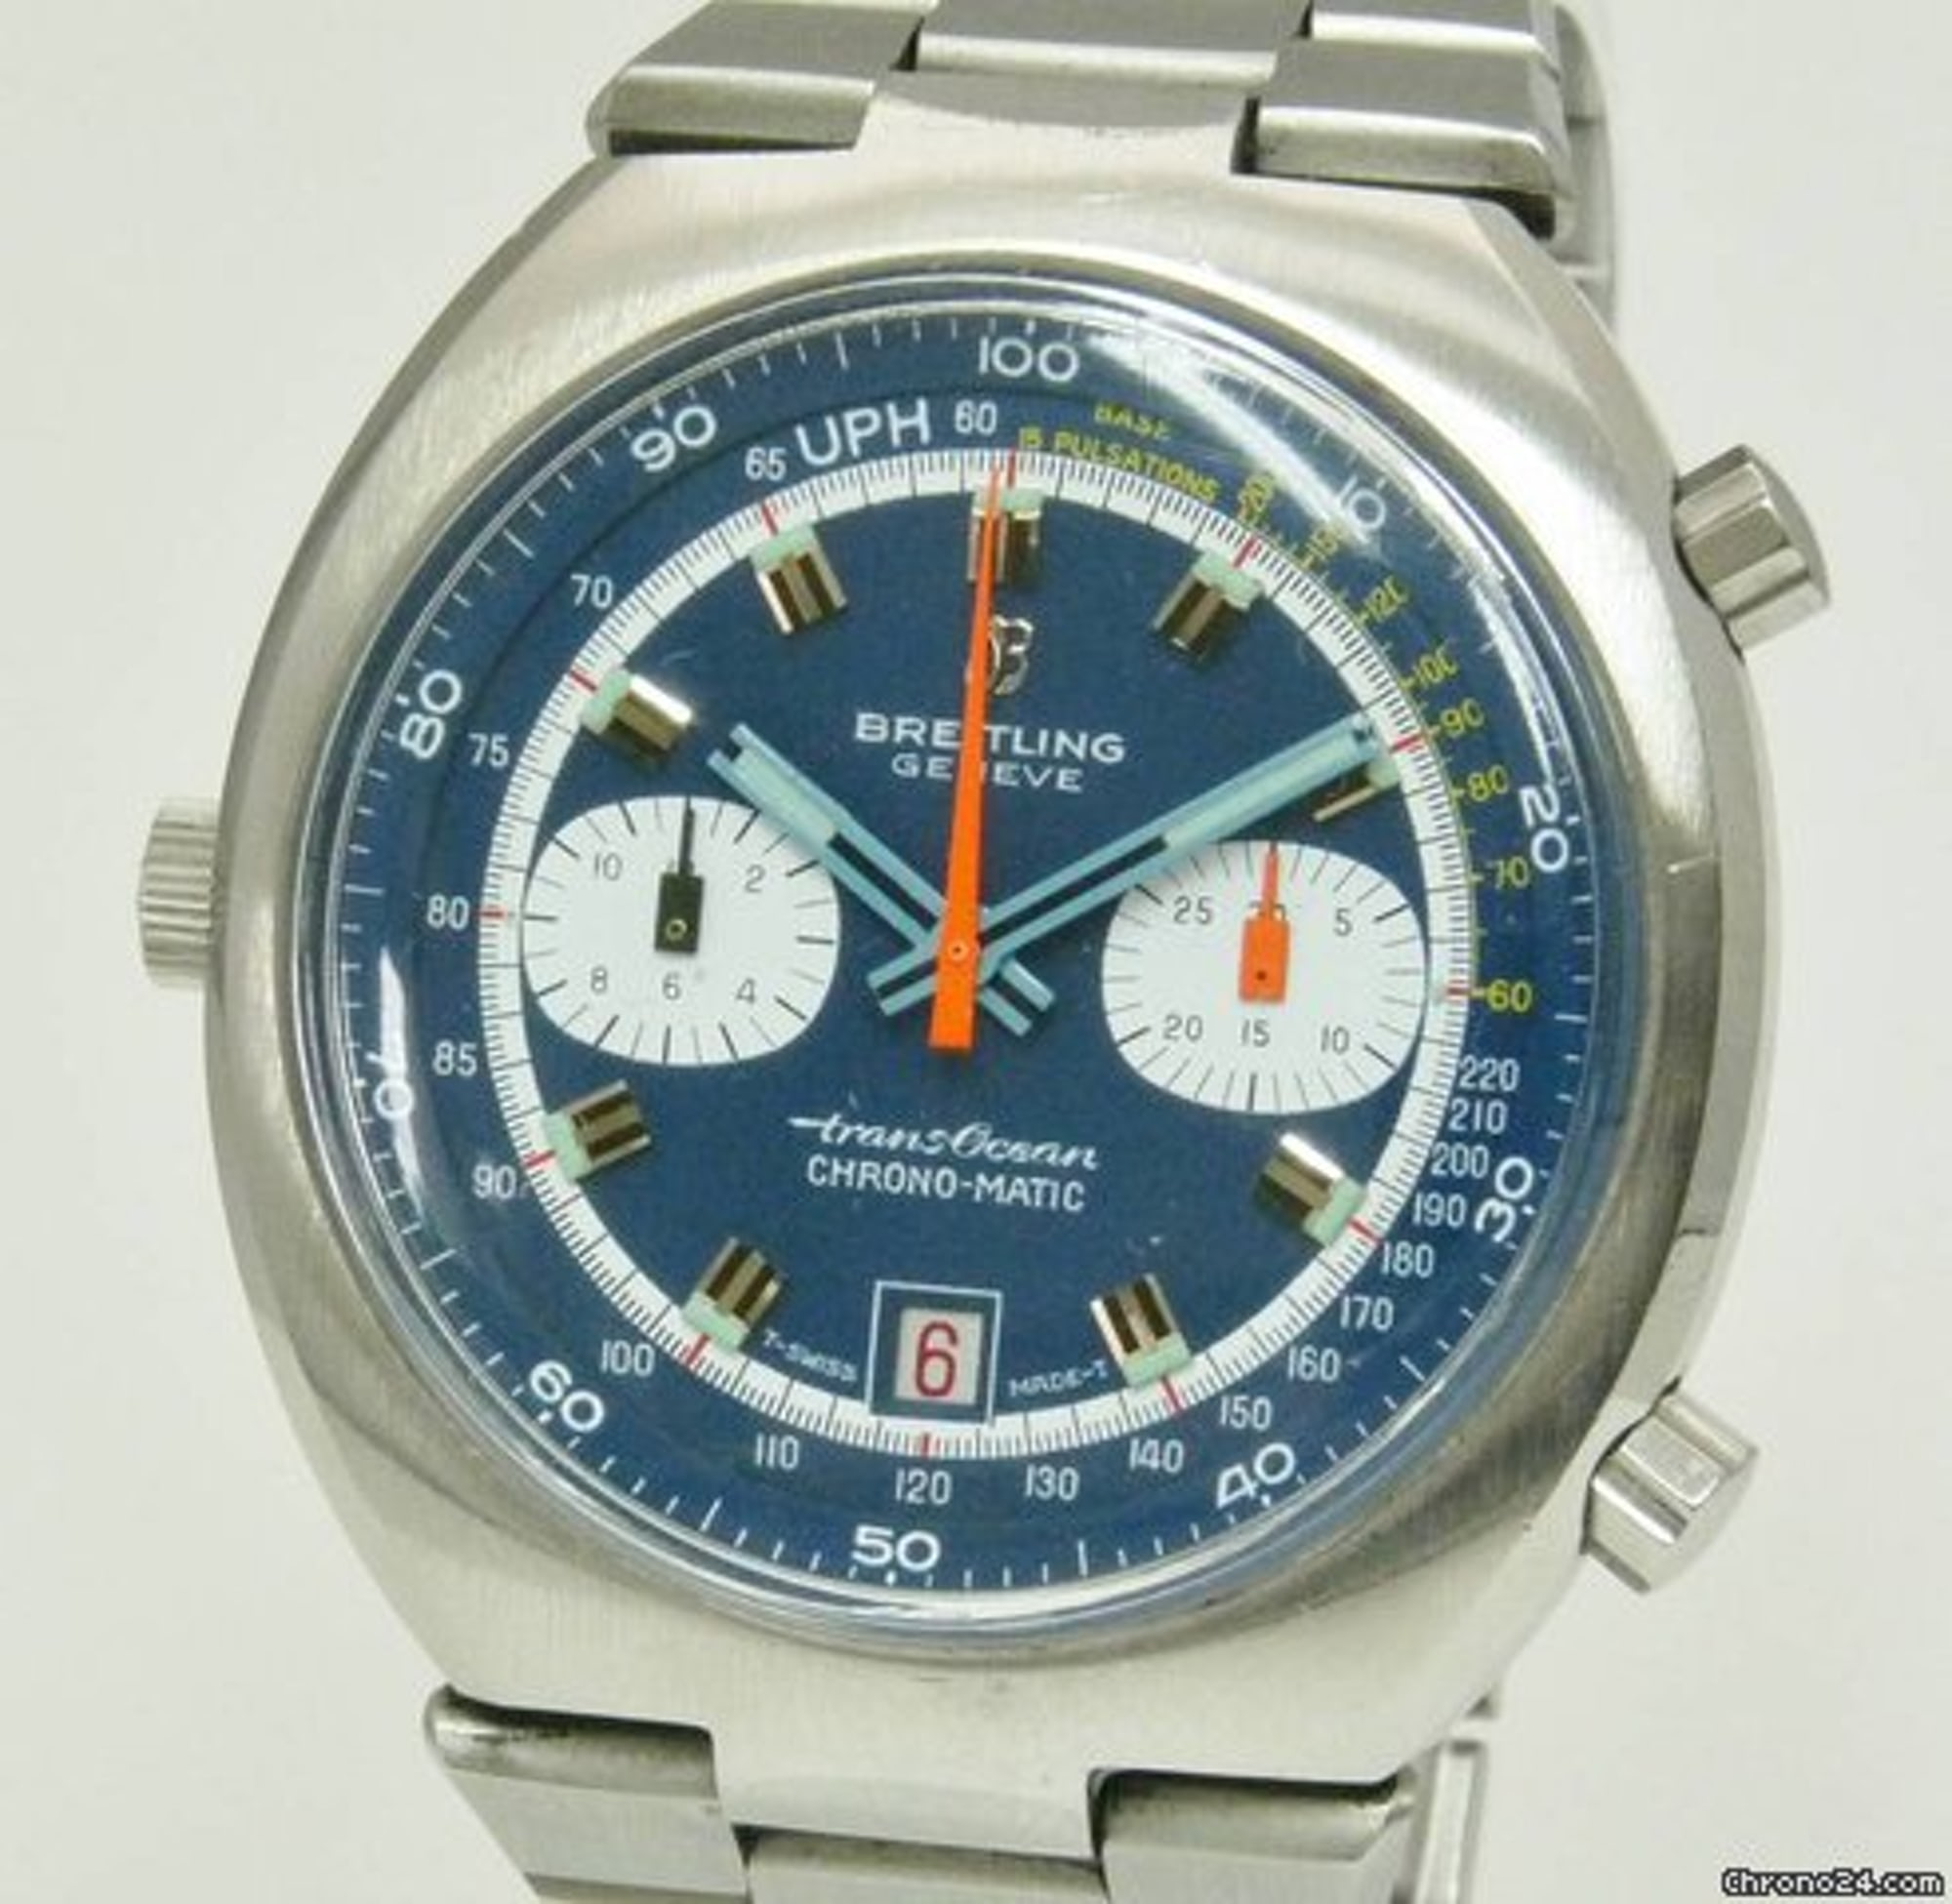 Breitling Transocean Reference 2119